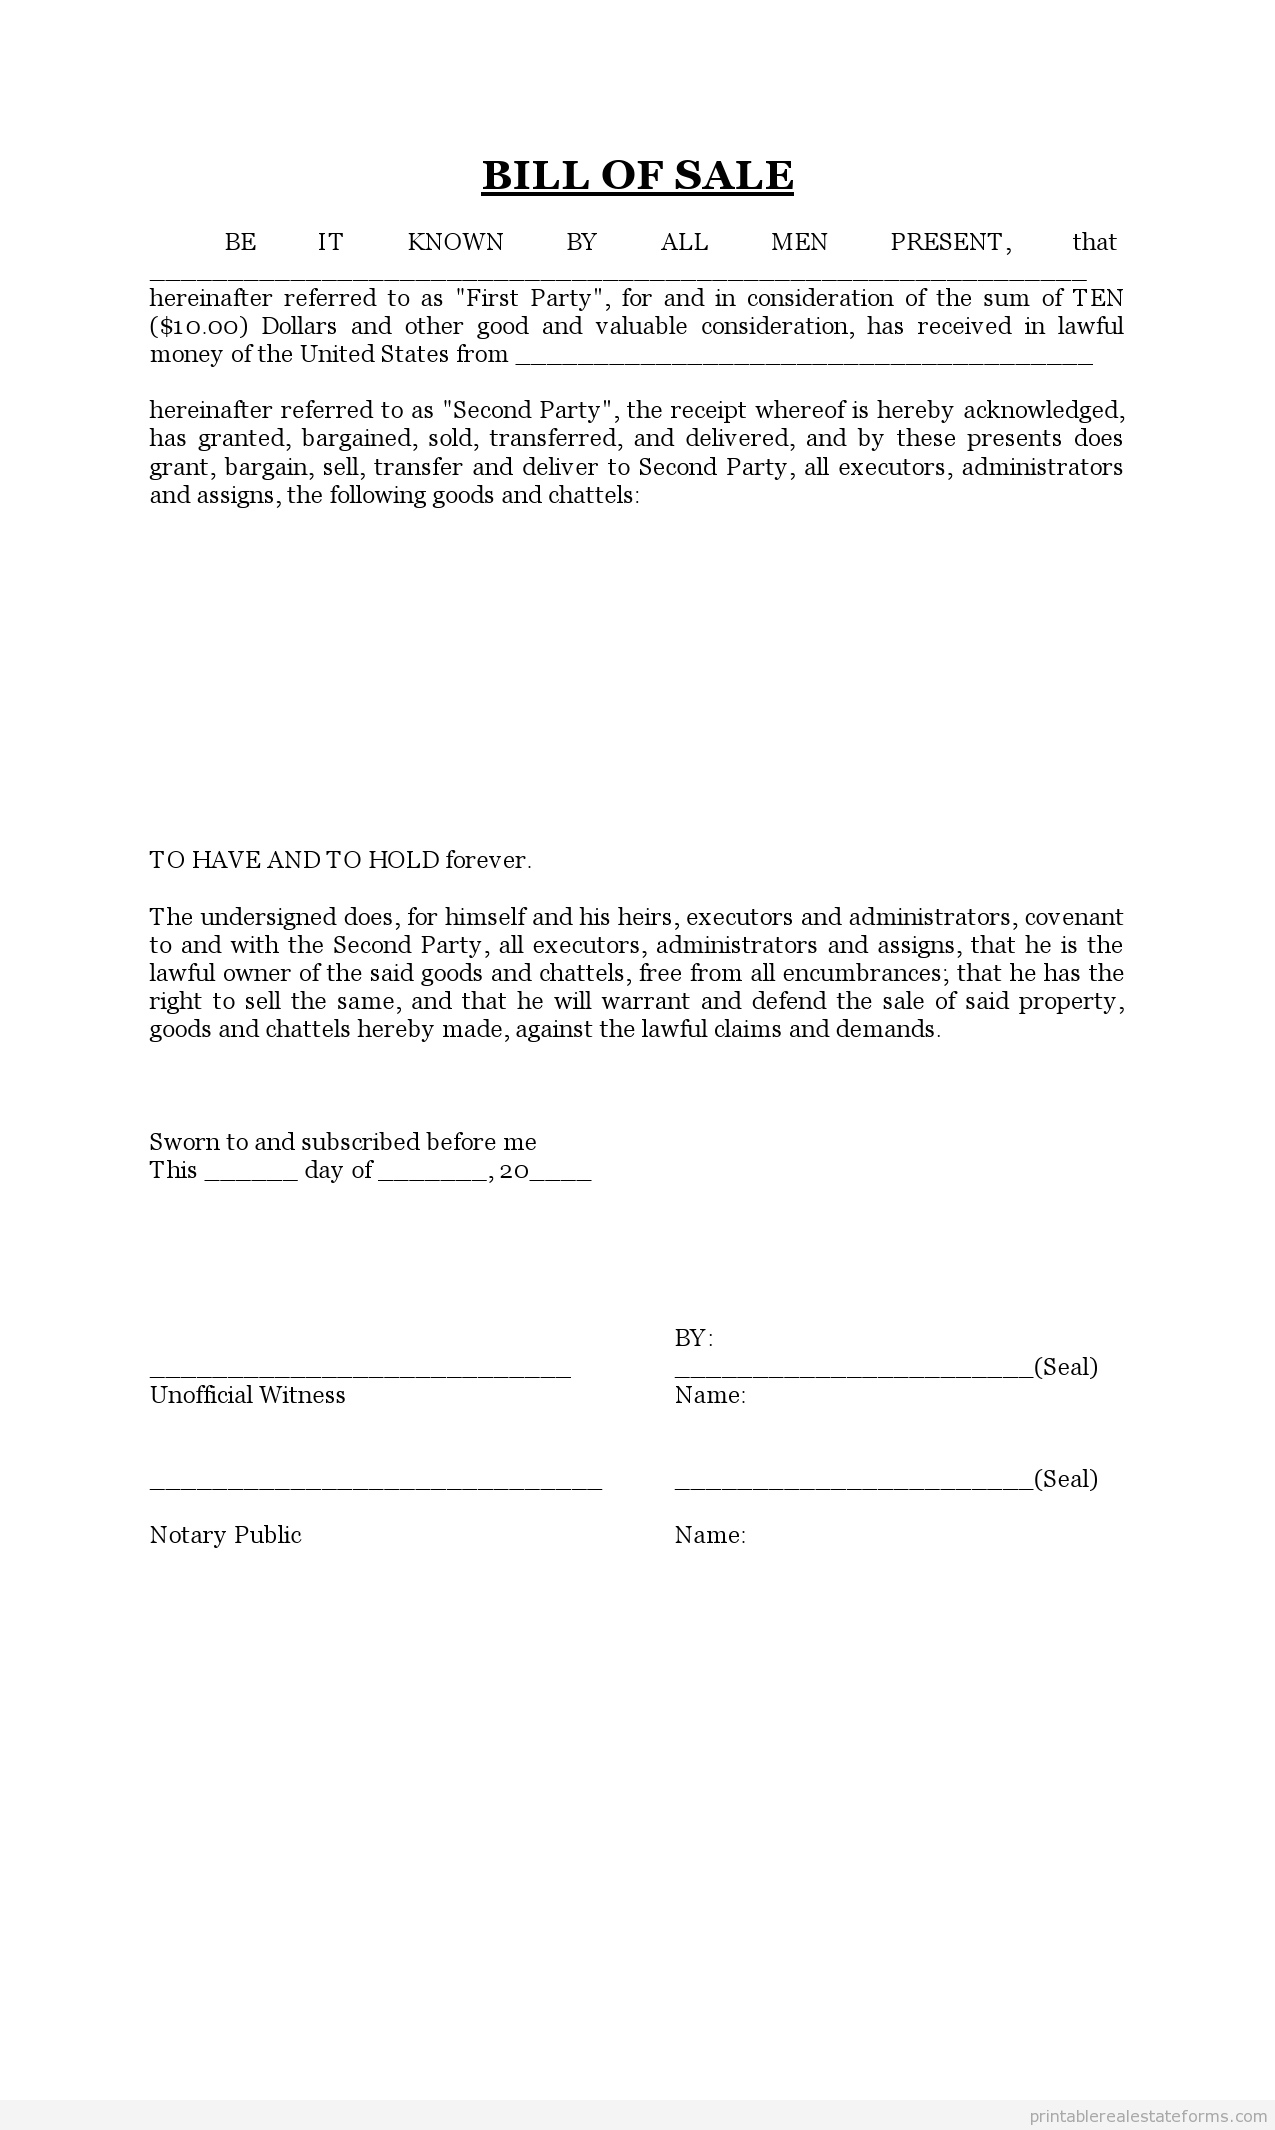 FREE PRINTABLE BILL OF SALE FORM WORD TEMPLATE